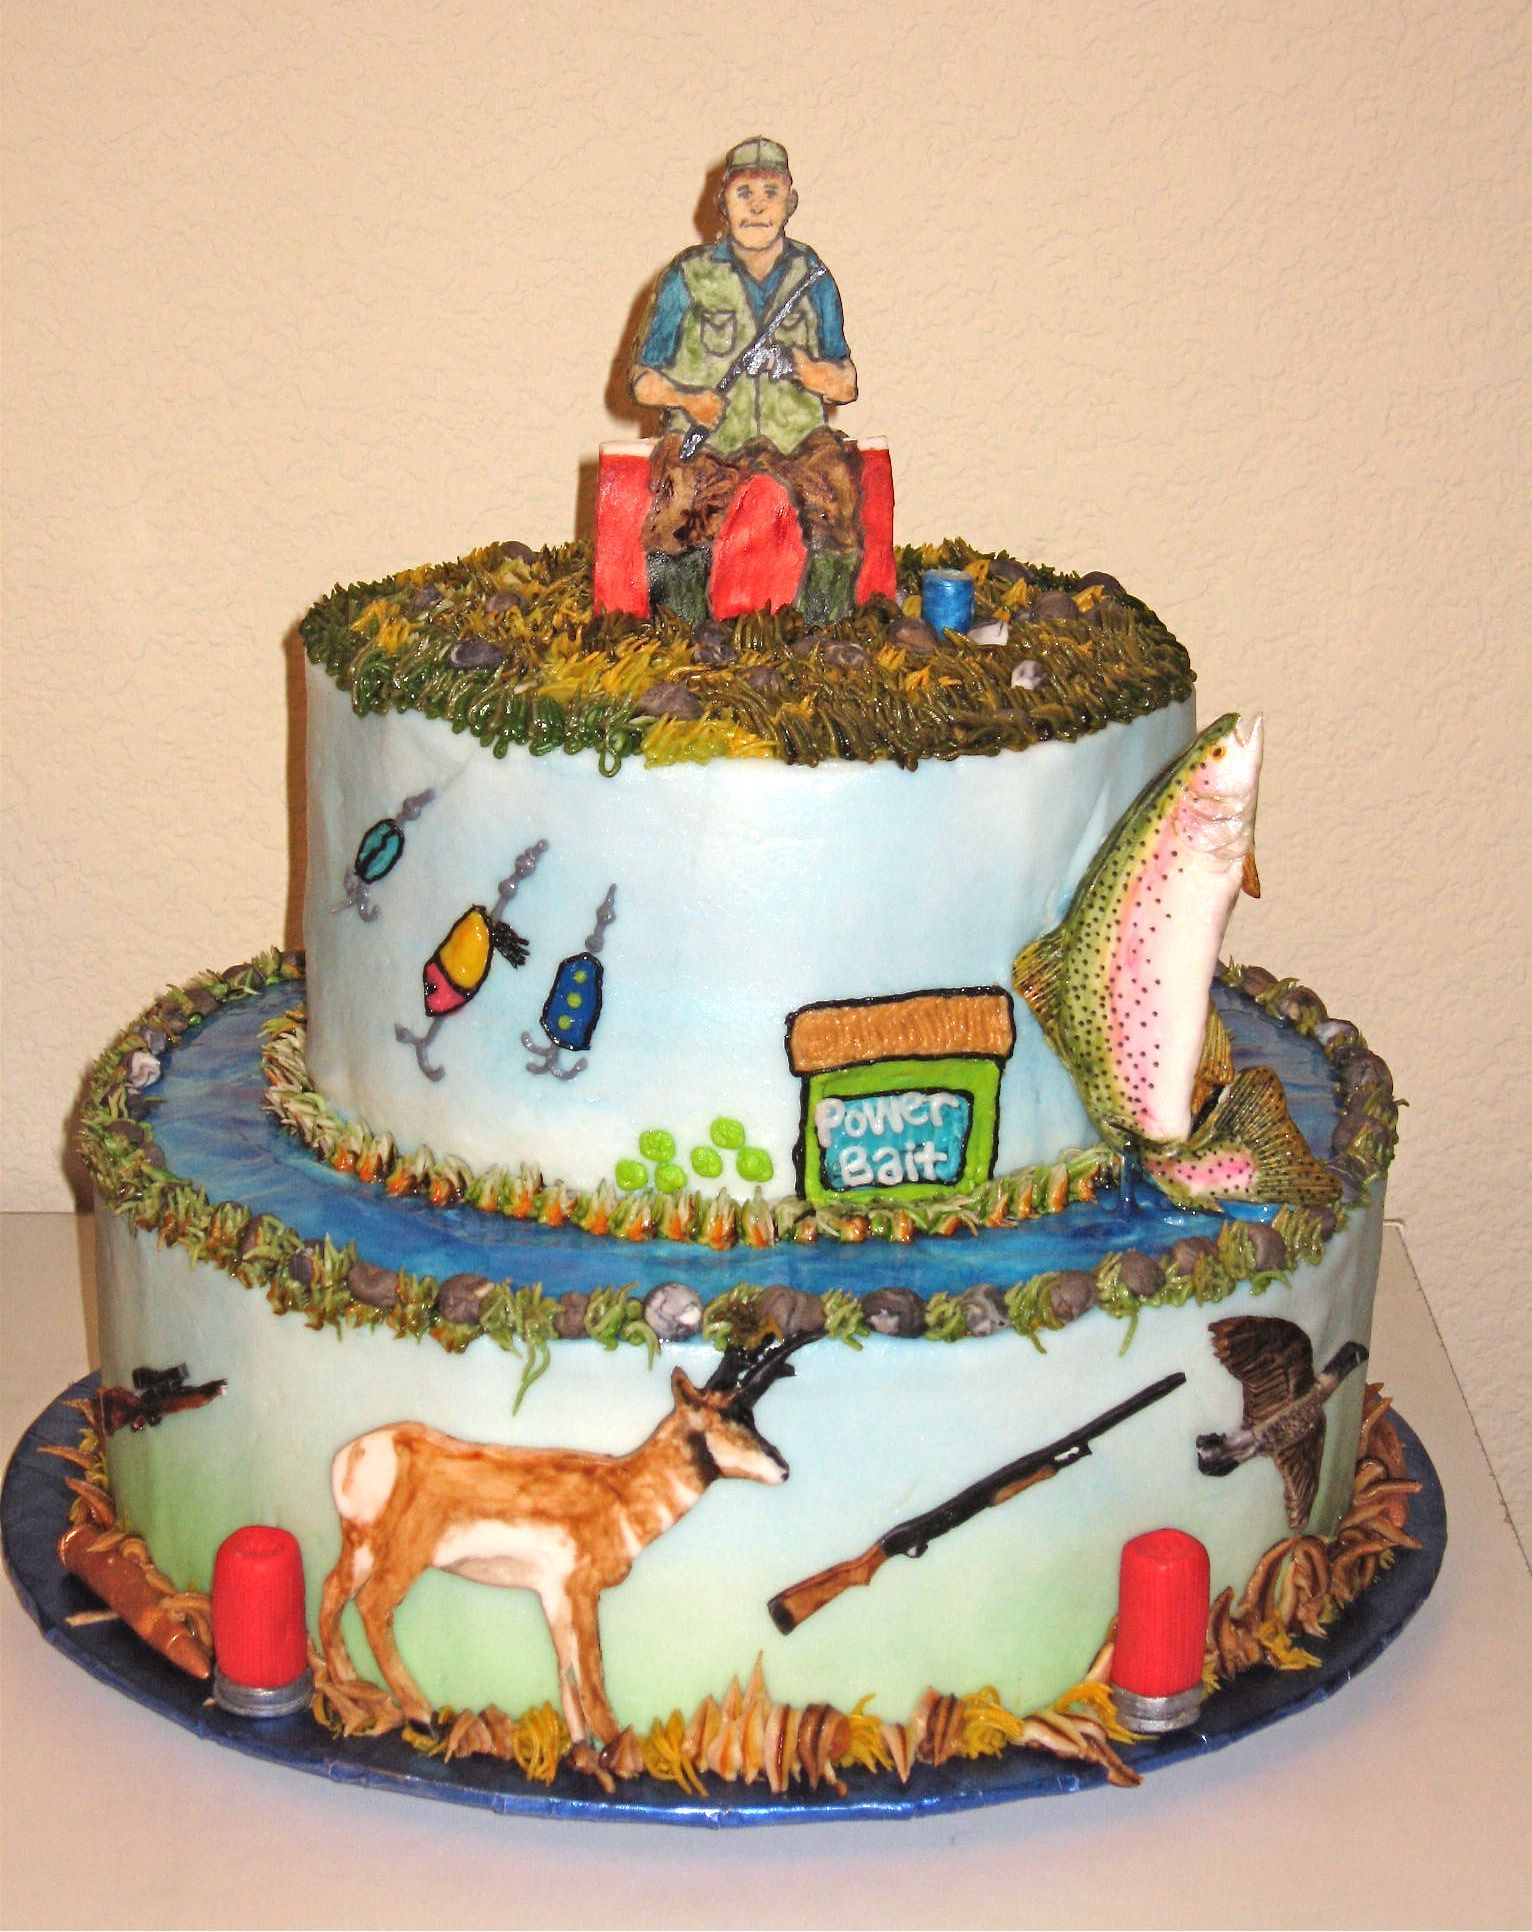 Fishing hunting cake creative cakes pinterest fish creative huntin and fishin man birthday cake ki might be swayed from his angry birds birthday theme for this publicscrutiny Choice Image